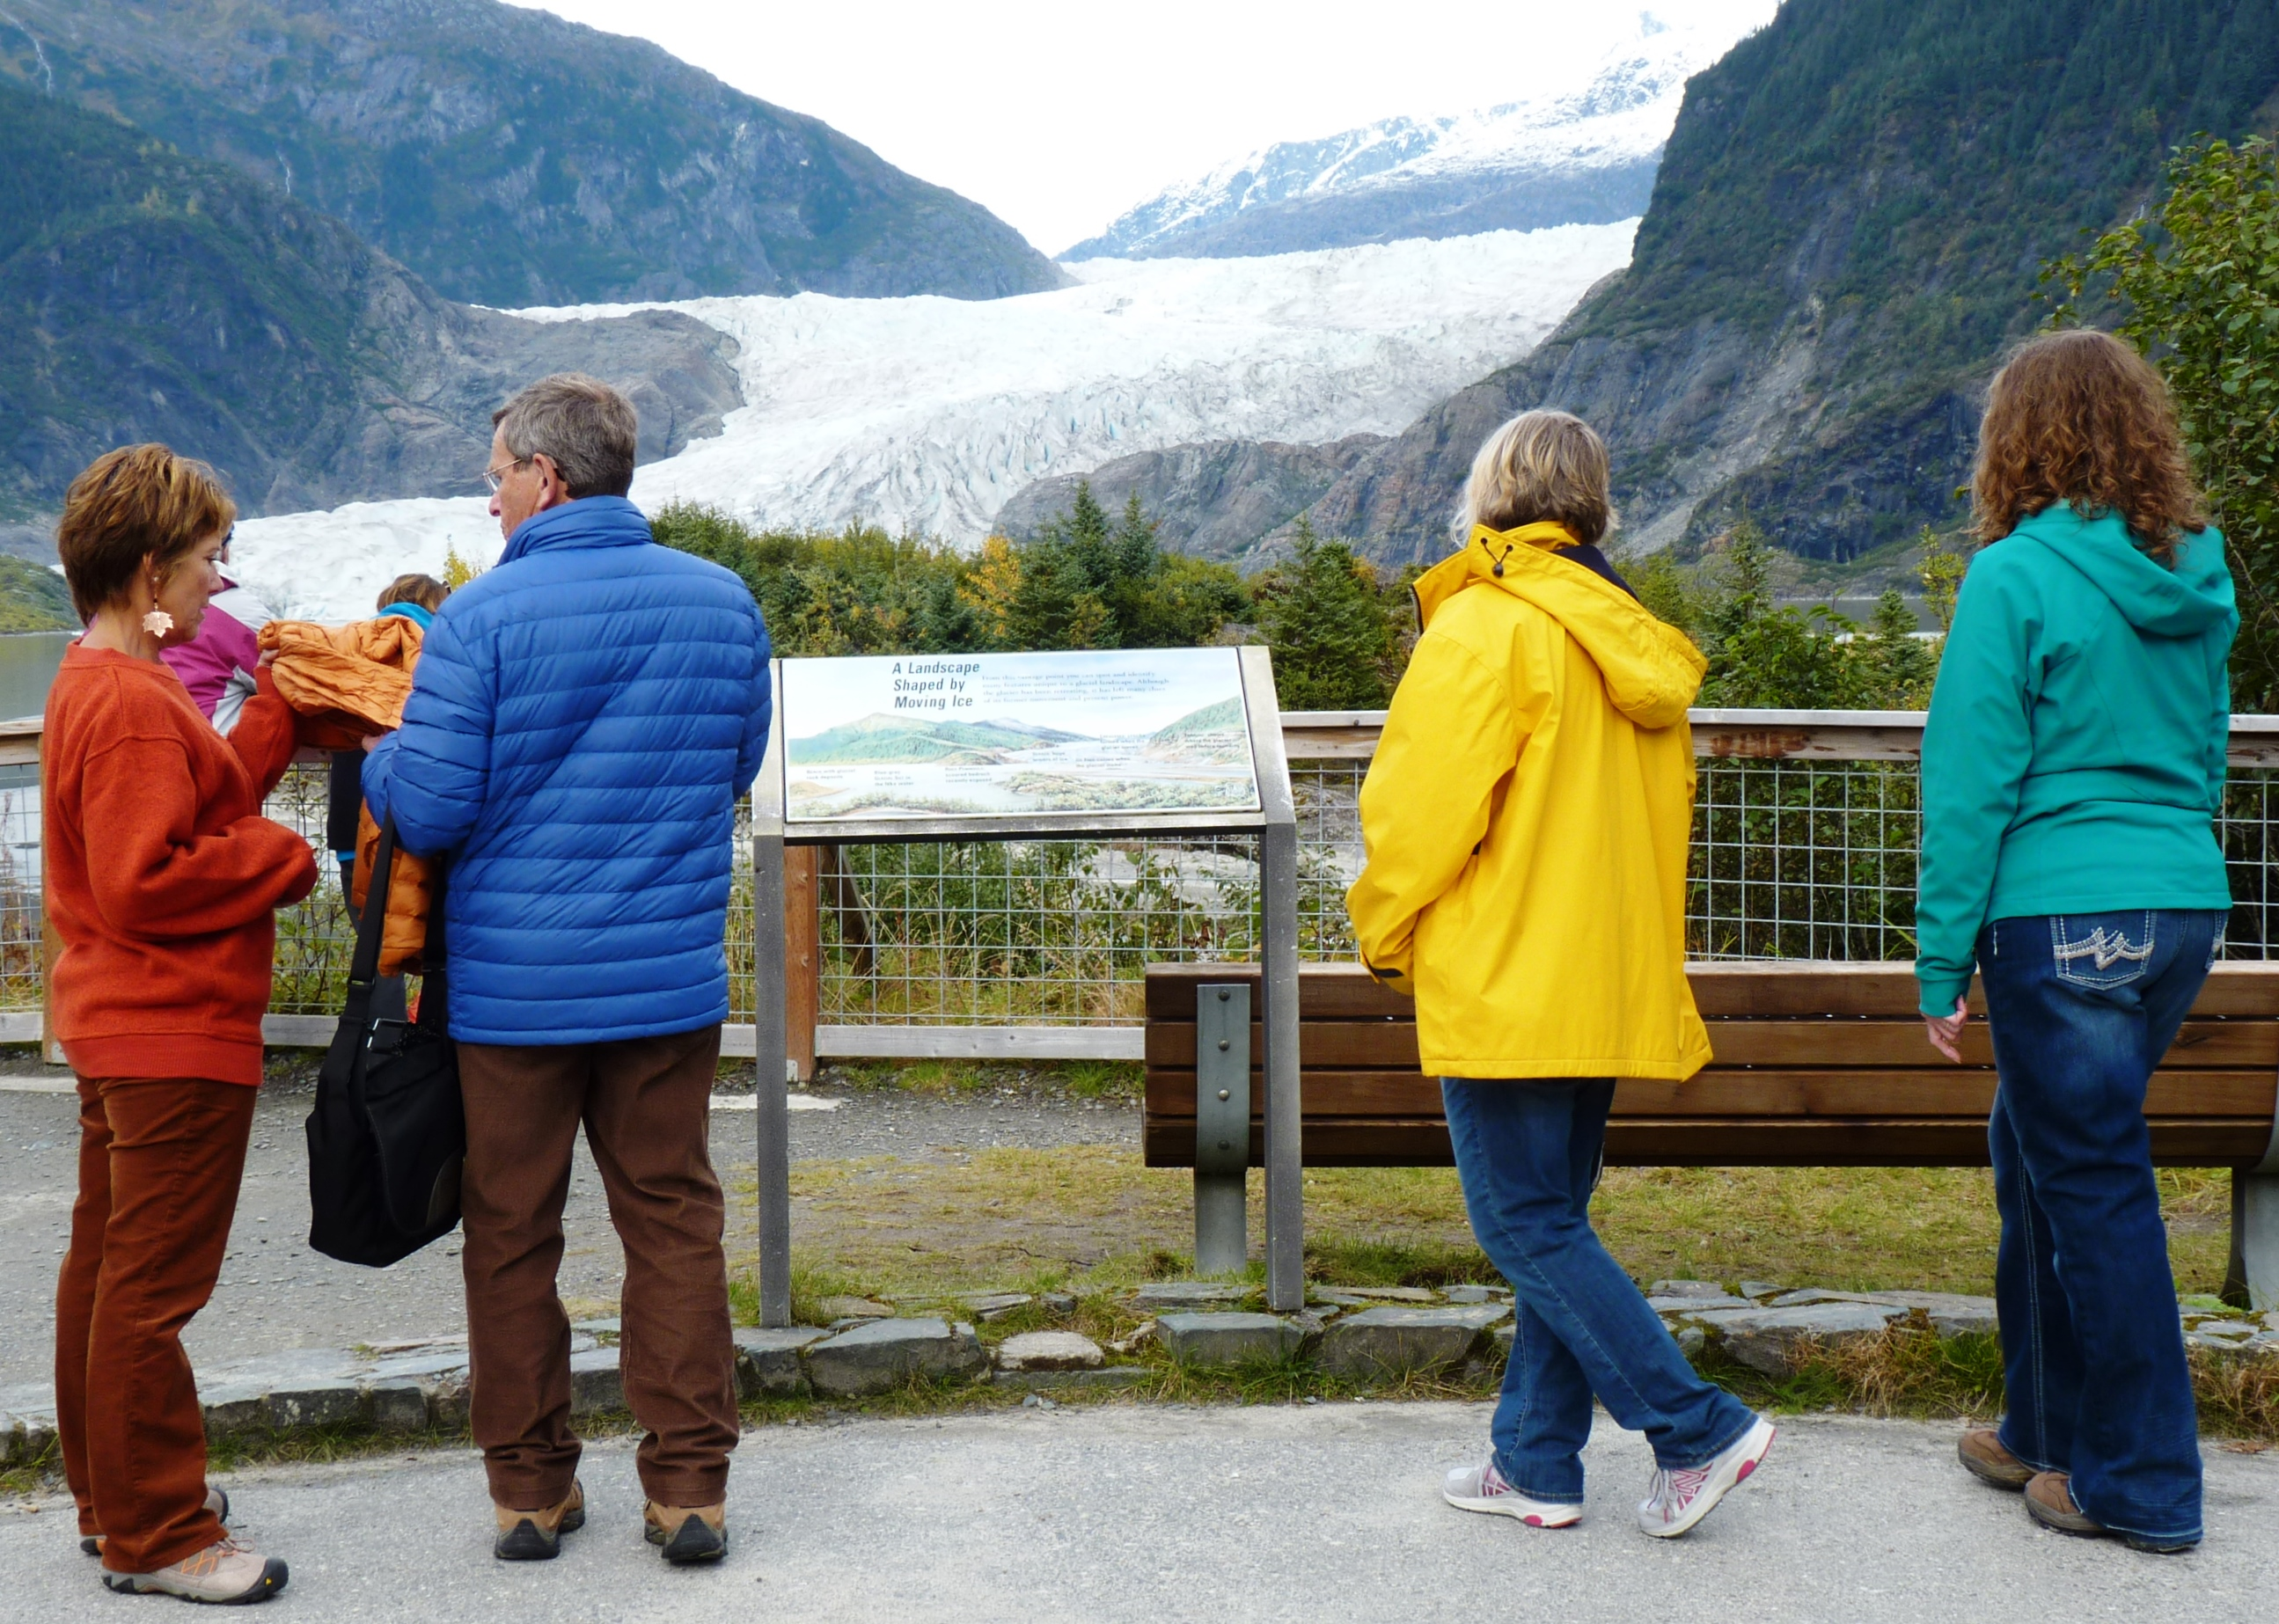 9-22-15 Tourists check out the A Landscape Shaped By Moving Ice sign at the Mendenhall Glacier